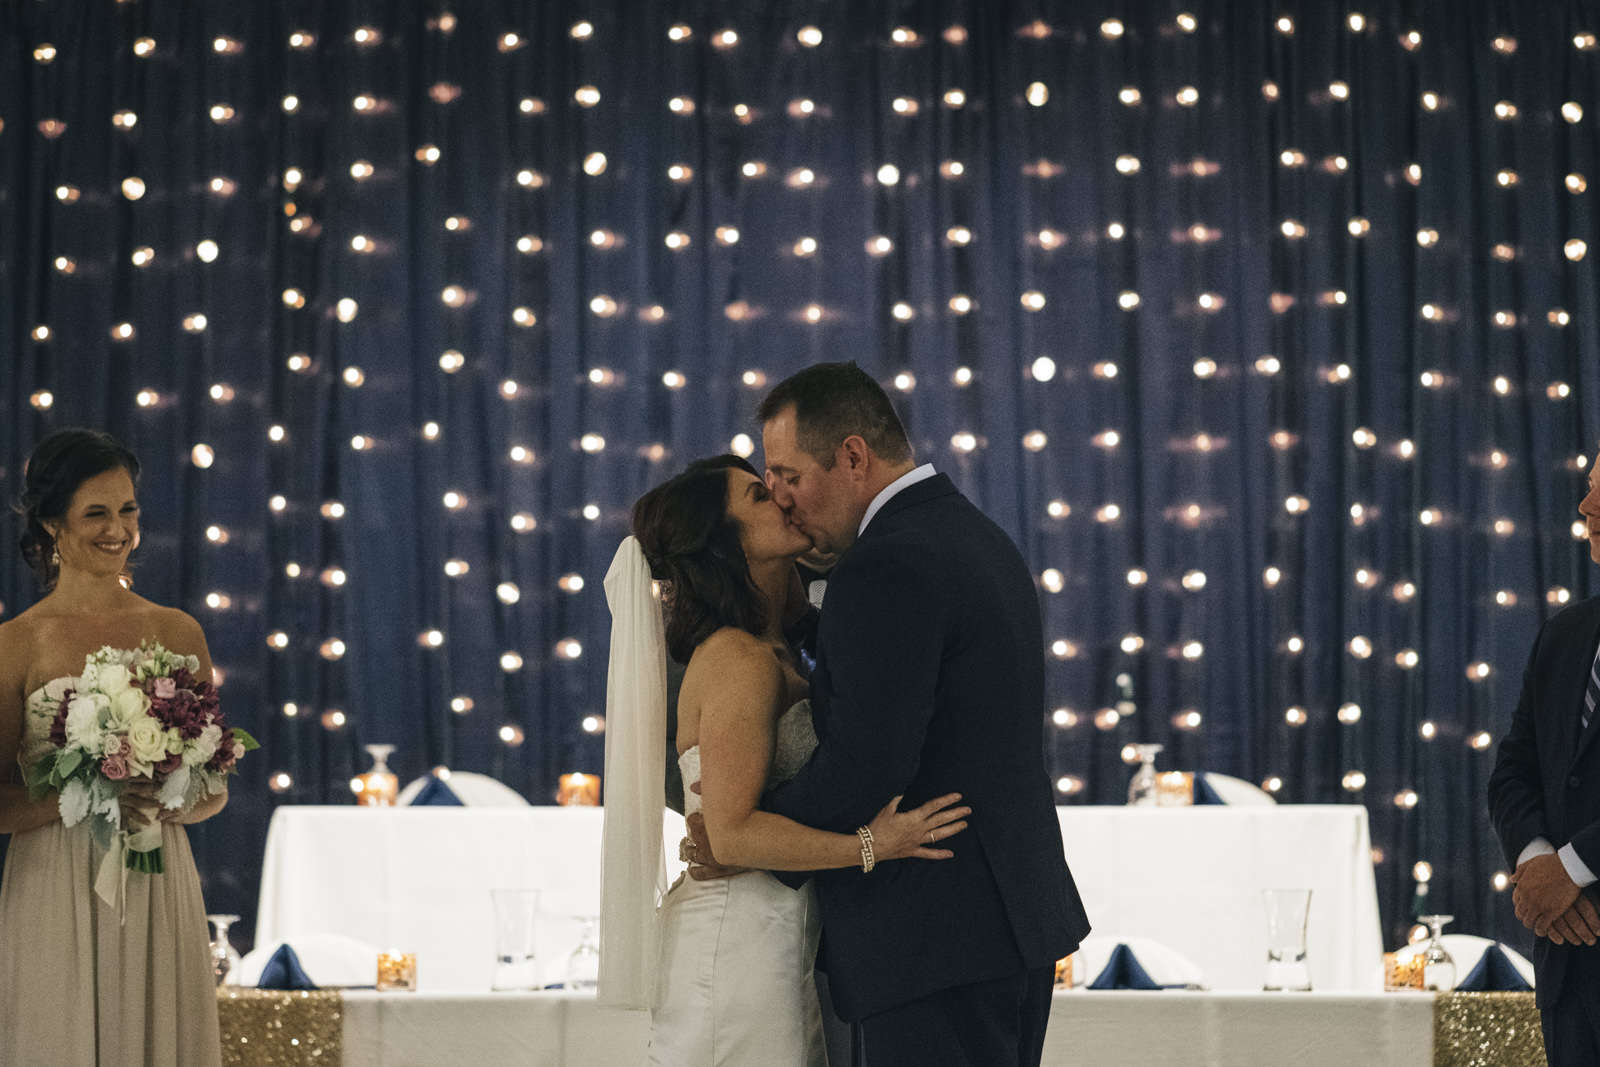 Bride and groom share their first kiss at their wedding ceremony at the Stranahan Theatre.